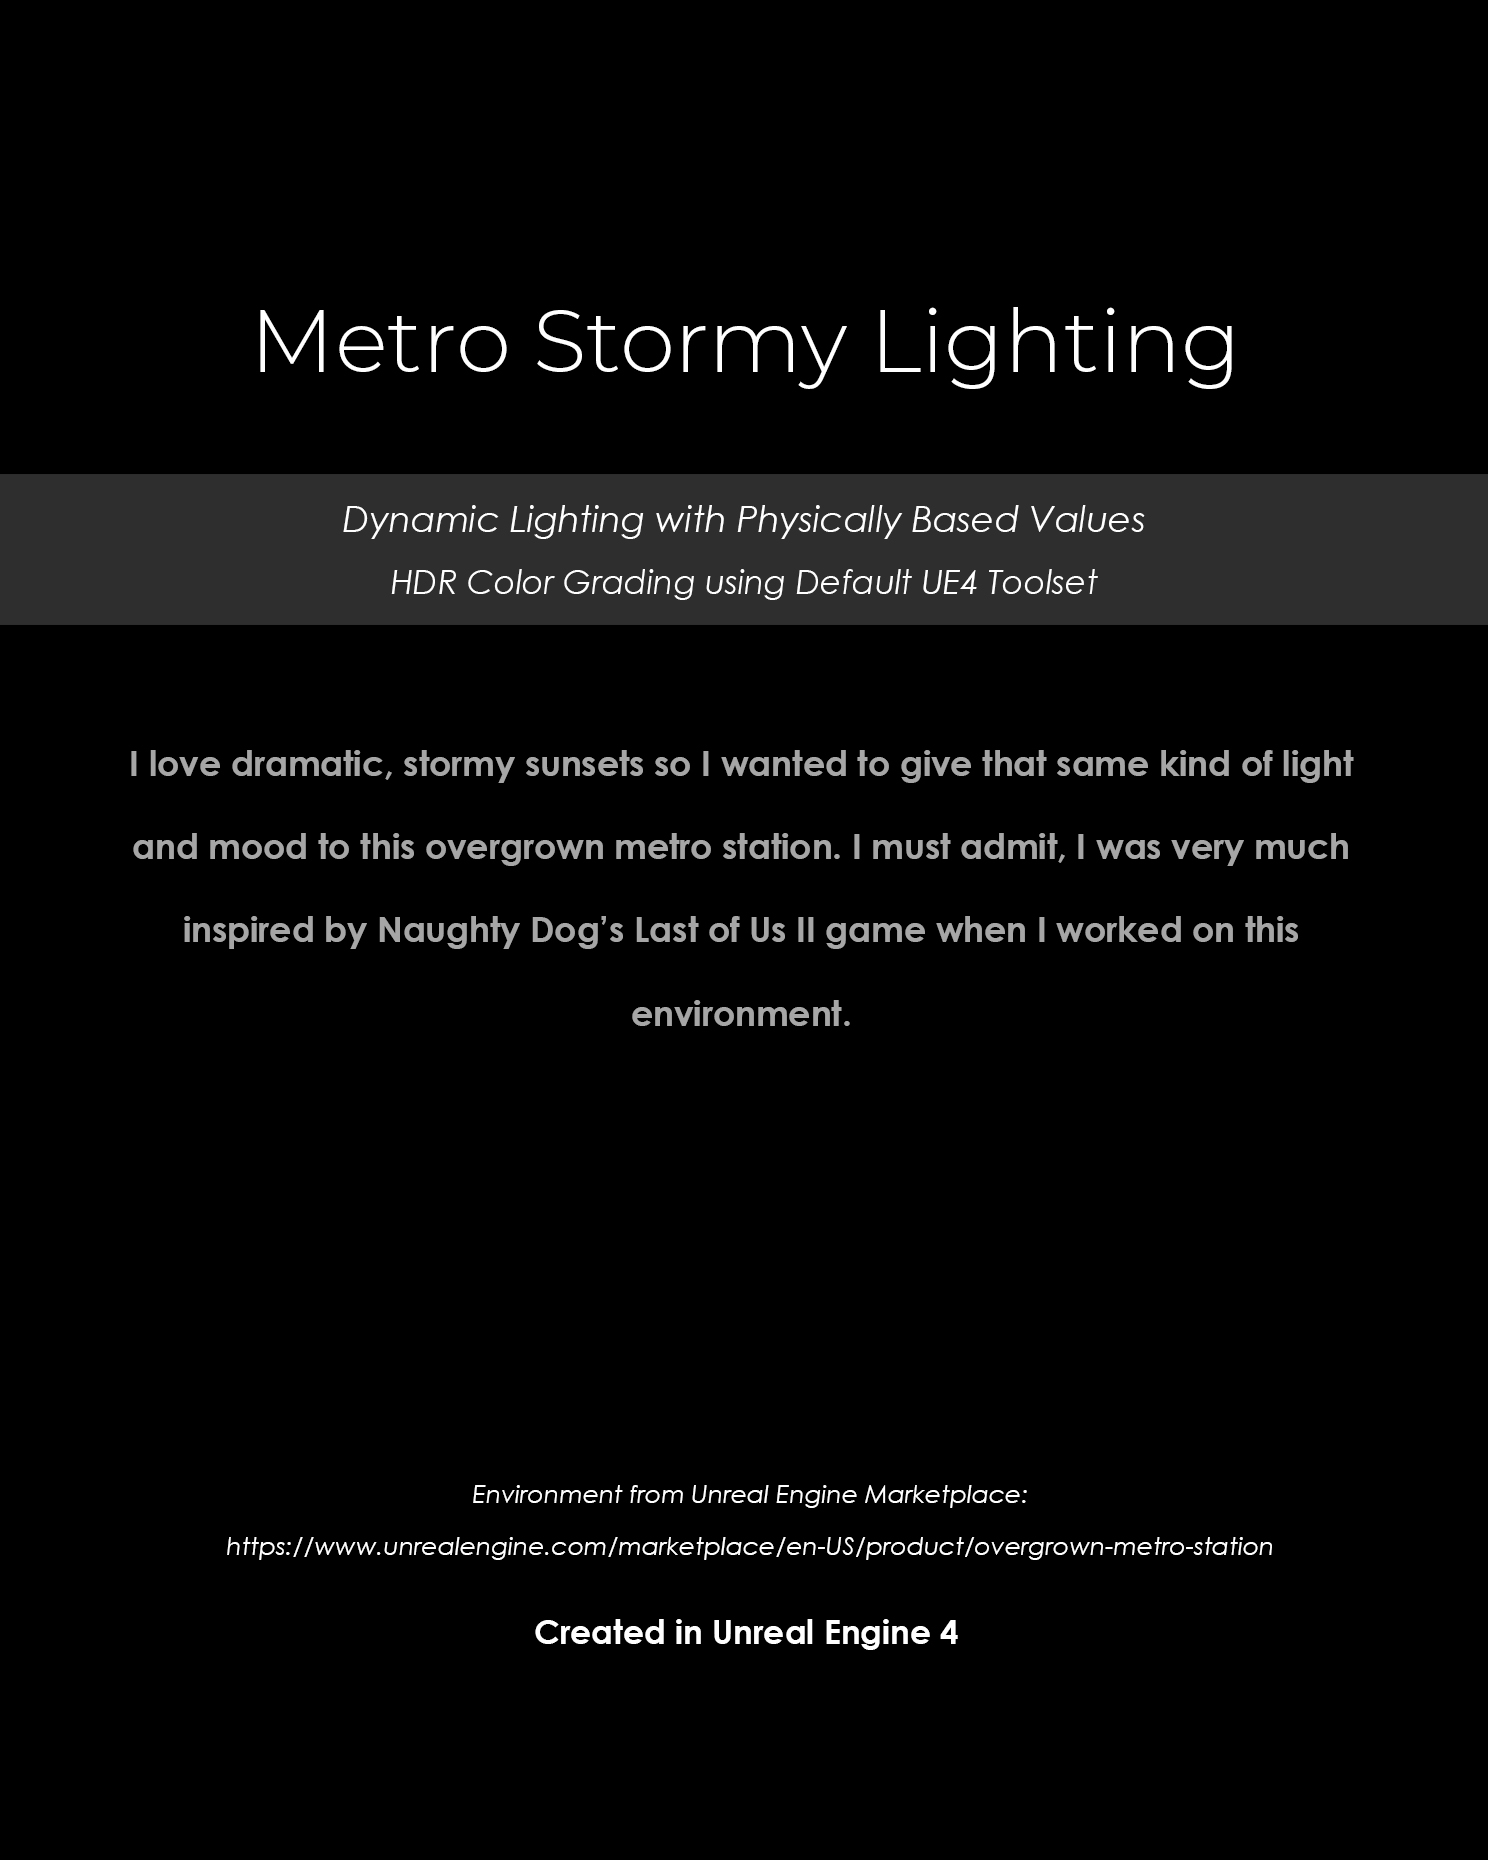 Metro Stormy Lighting Title Page